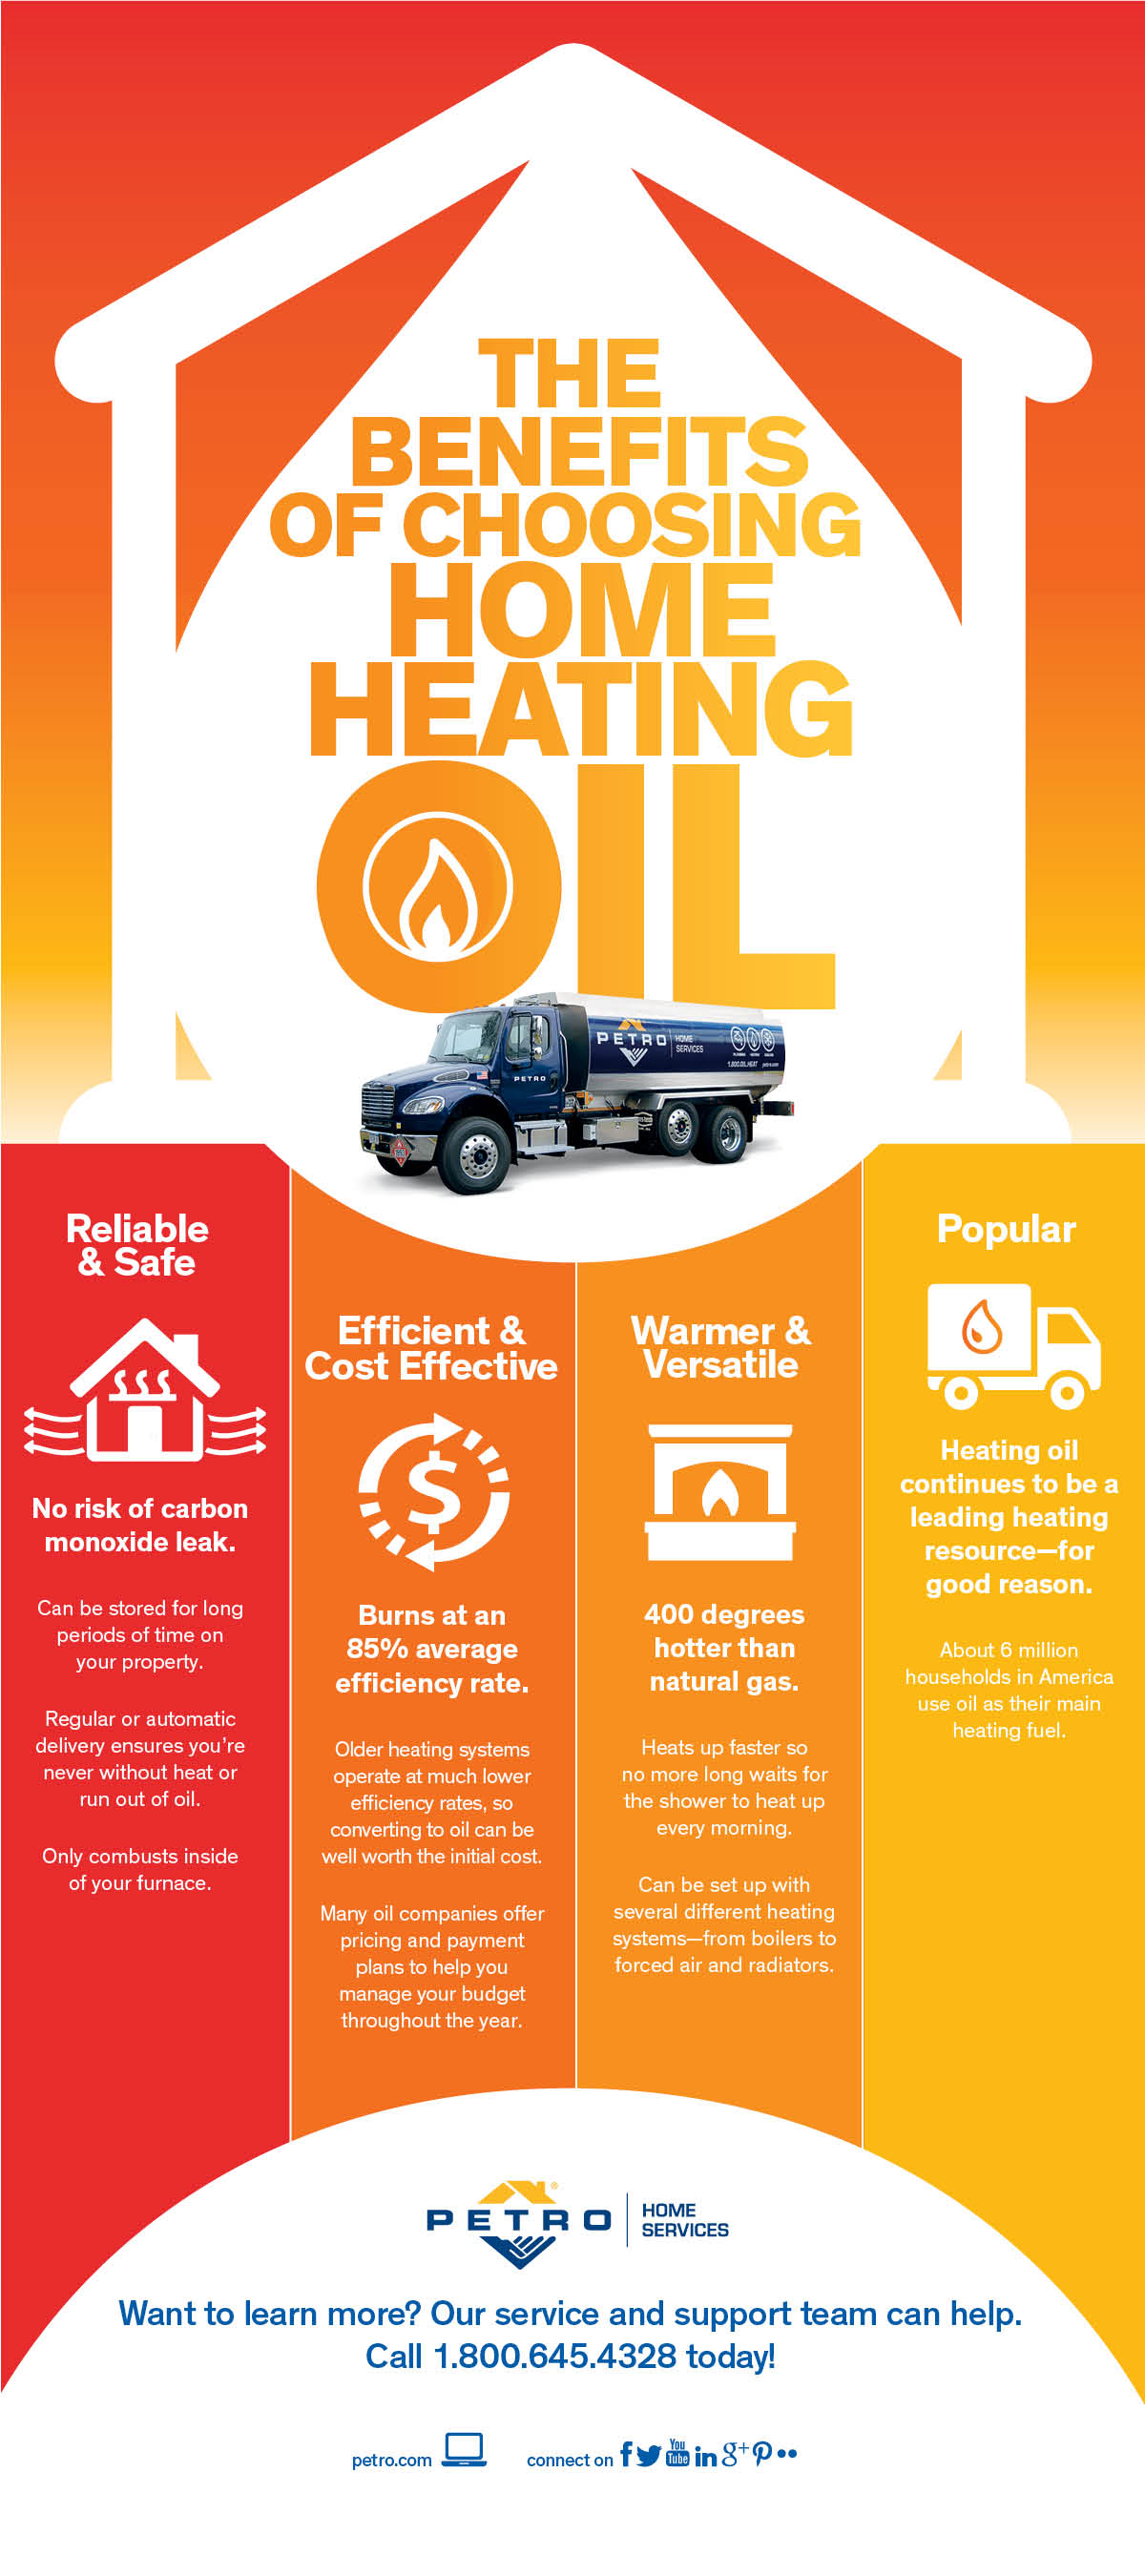 Home heating oil: it is a great value